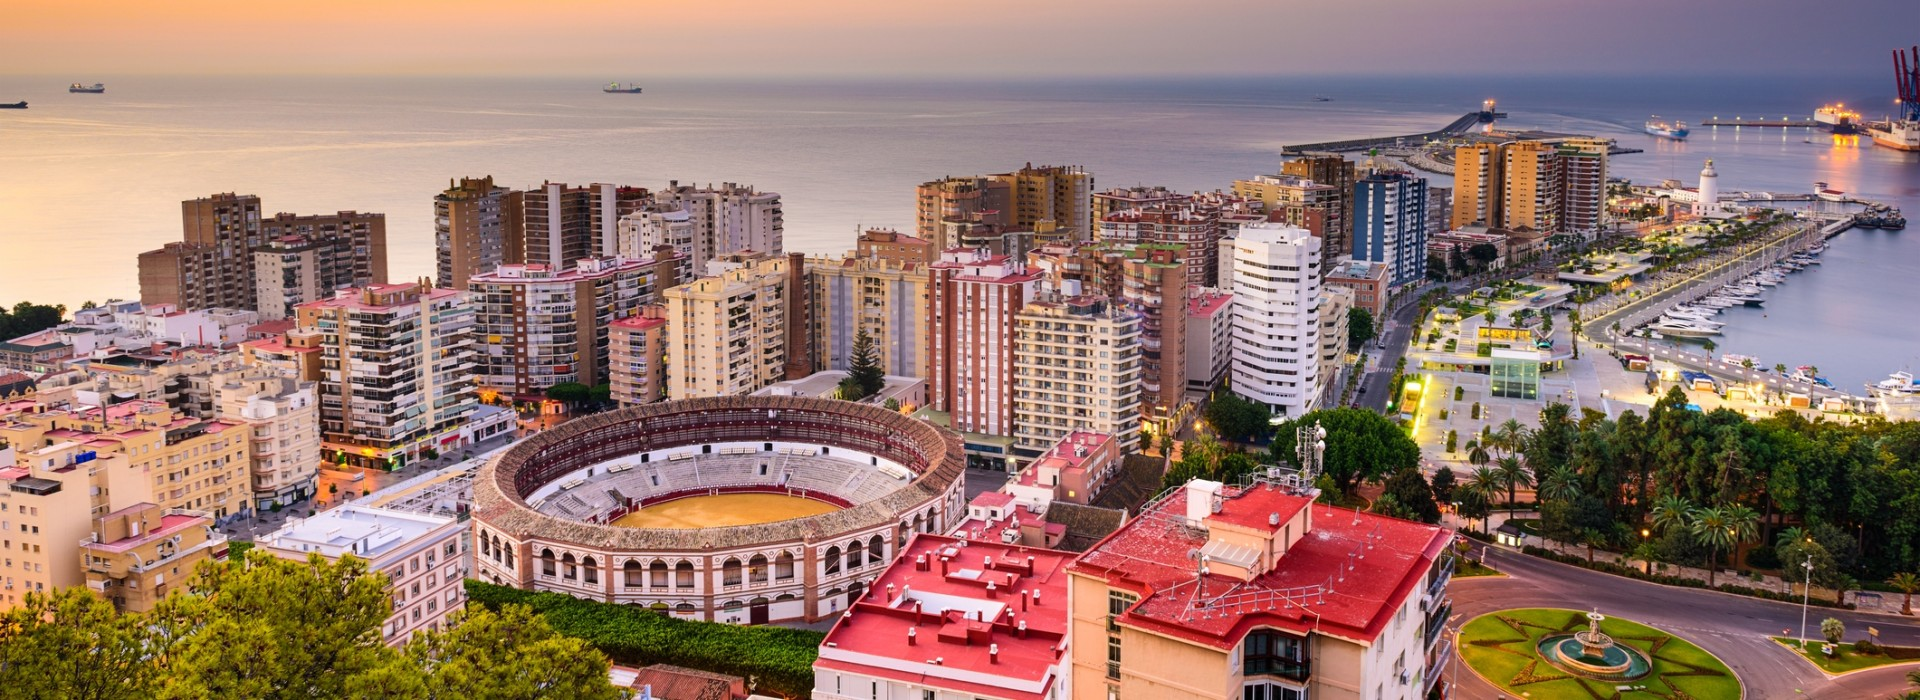 Malaga Tours and Holidays 2018/2019